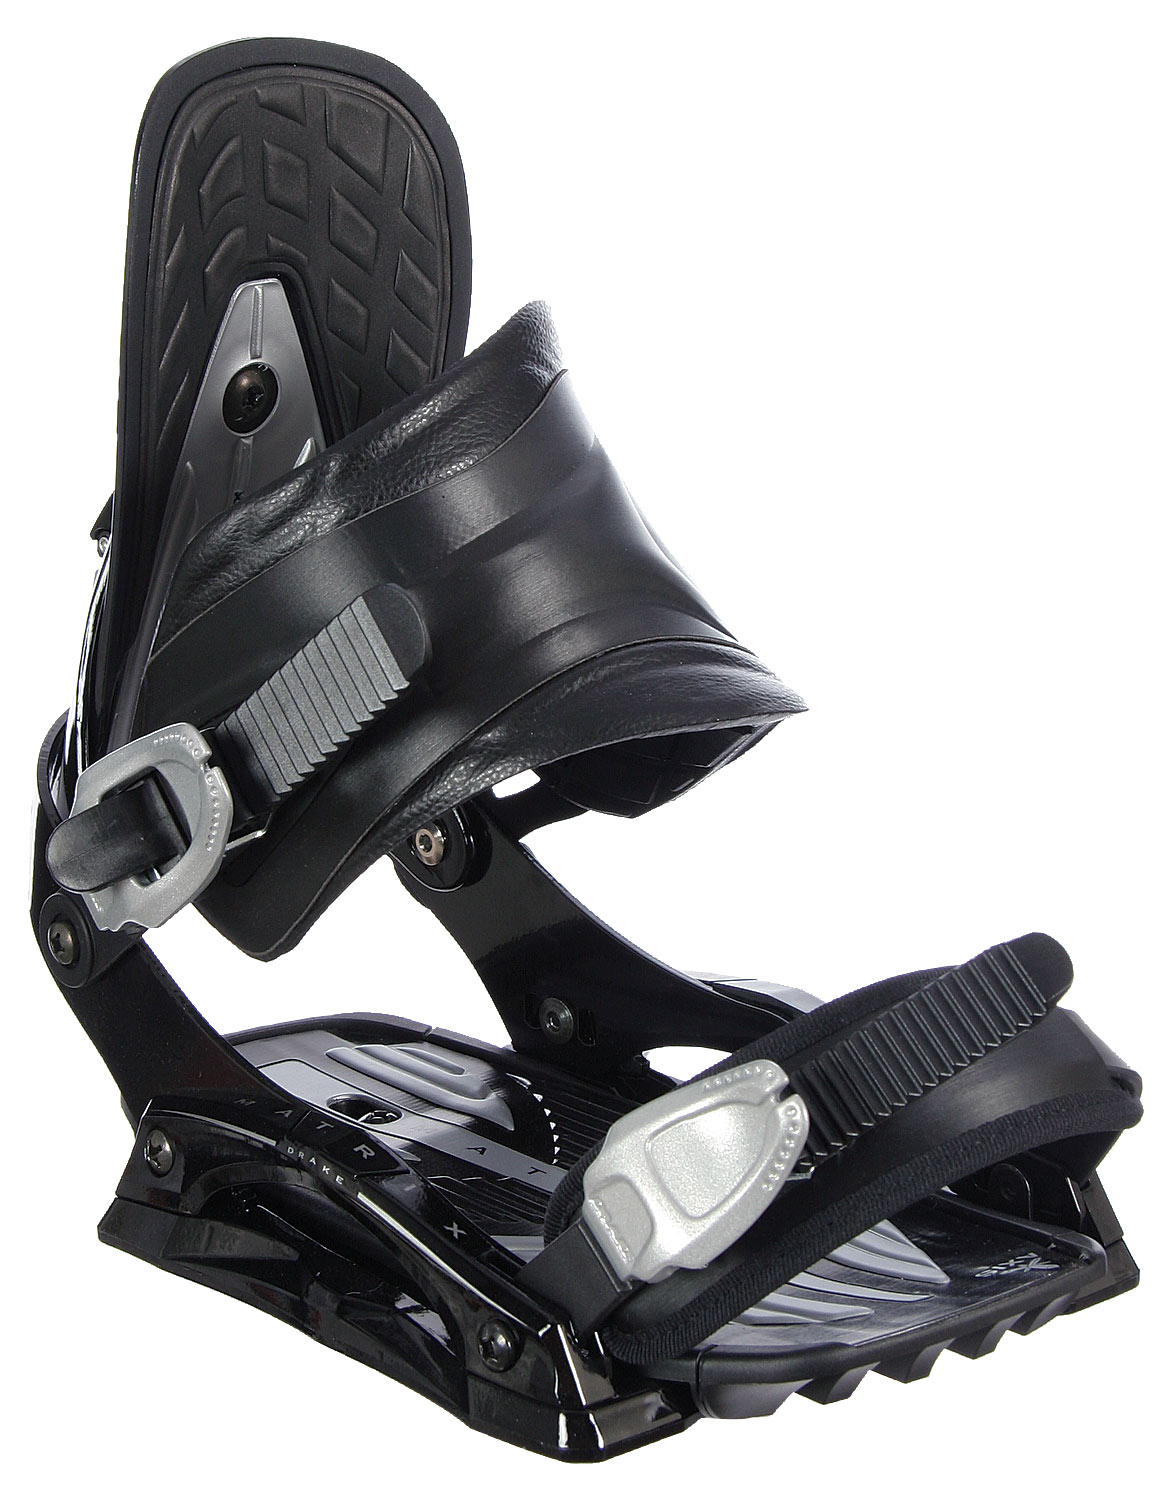 Snowboard The Matrix bindings are Drake's way of helping you afford a super high-tech and high-performance binding. Axis baseplate lets you adjust your bindings to your most comfortable, centered position. Traction control bridges provide increased response by adding another support from toe to heel. Real-quick adjust 4-ward lean for on-the-spot adjustments. Axis accelerators and disk cover for quick, reliable response. Four layer straps with dual-injected plastic frame and injected pad with softer center section and stiffer outers for increased comfort and instant response. 4x4 and 3-d compatible.Features for the Drake Matrix: Axis baseplate Axis Accelerators and Disc cover Axis Ltd Highback Really Quick adjust forward lean MFC Strap, asymmetric stiff for great response Axis Aluminum ratchets - $68.95